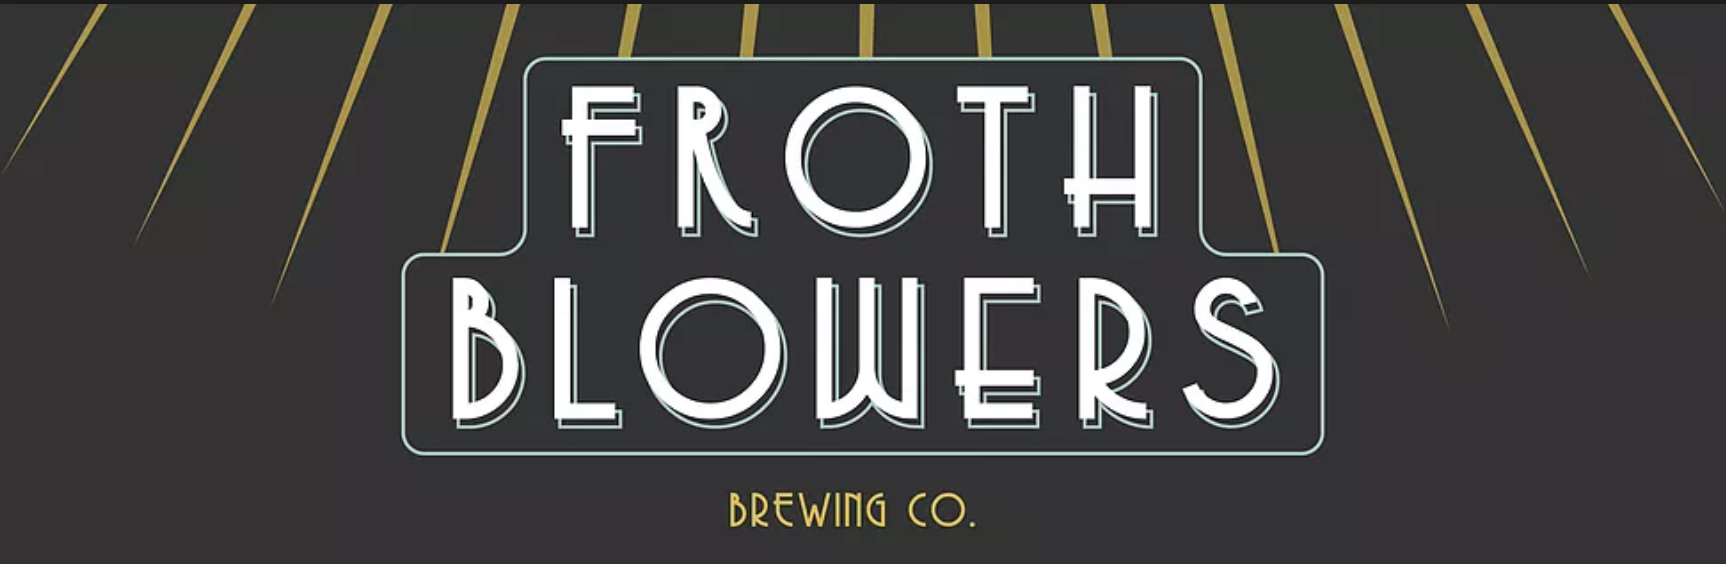 Froth Blowers Brewery